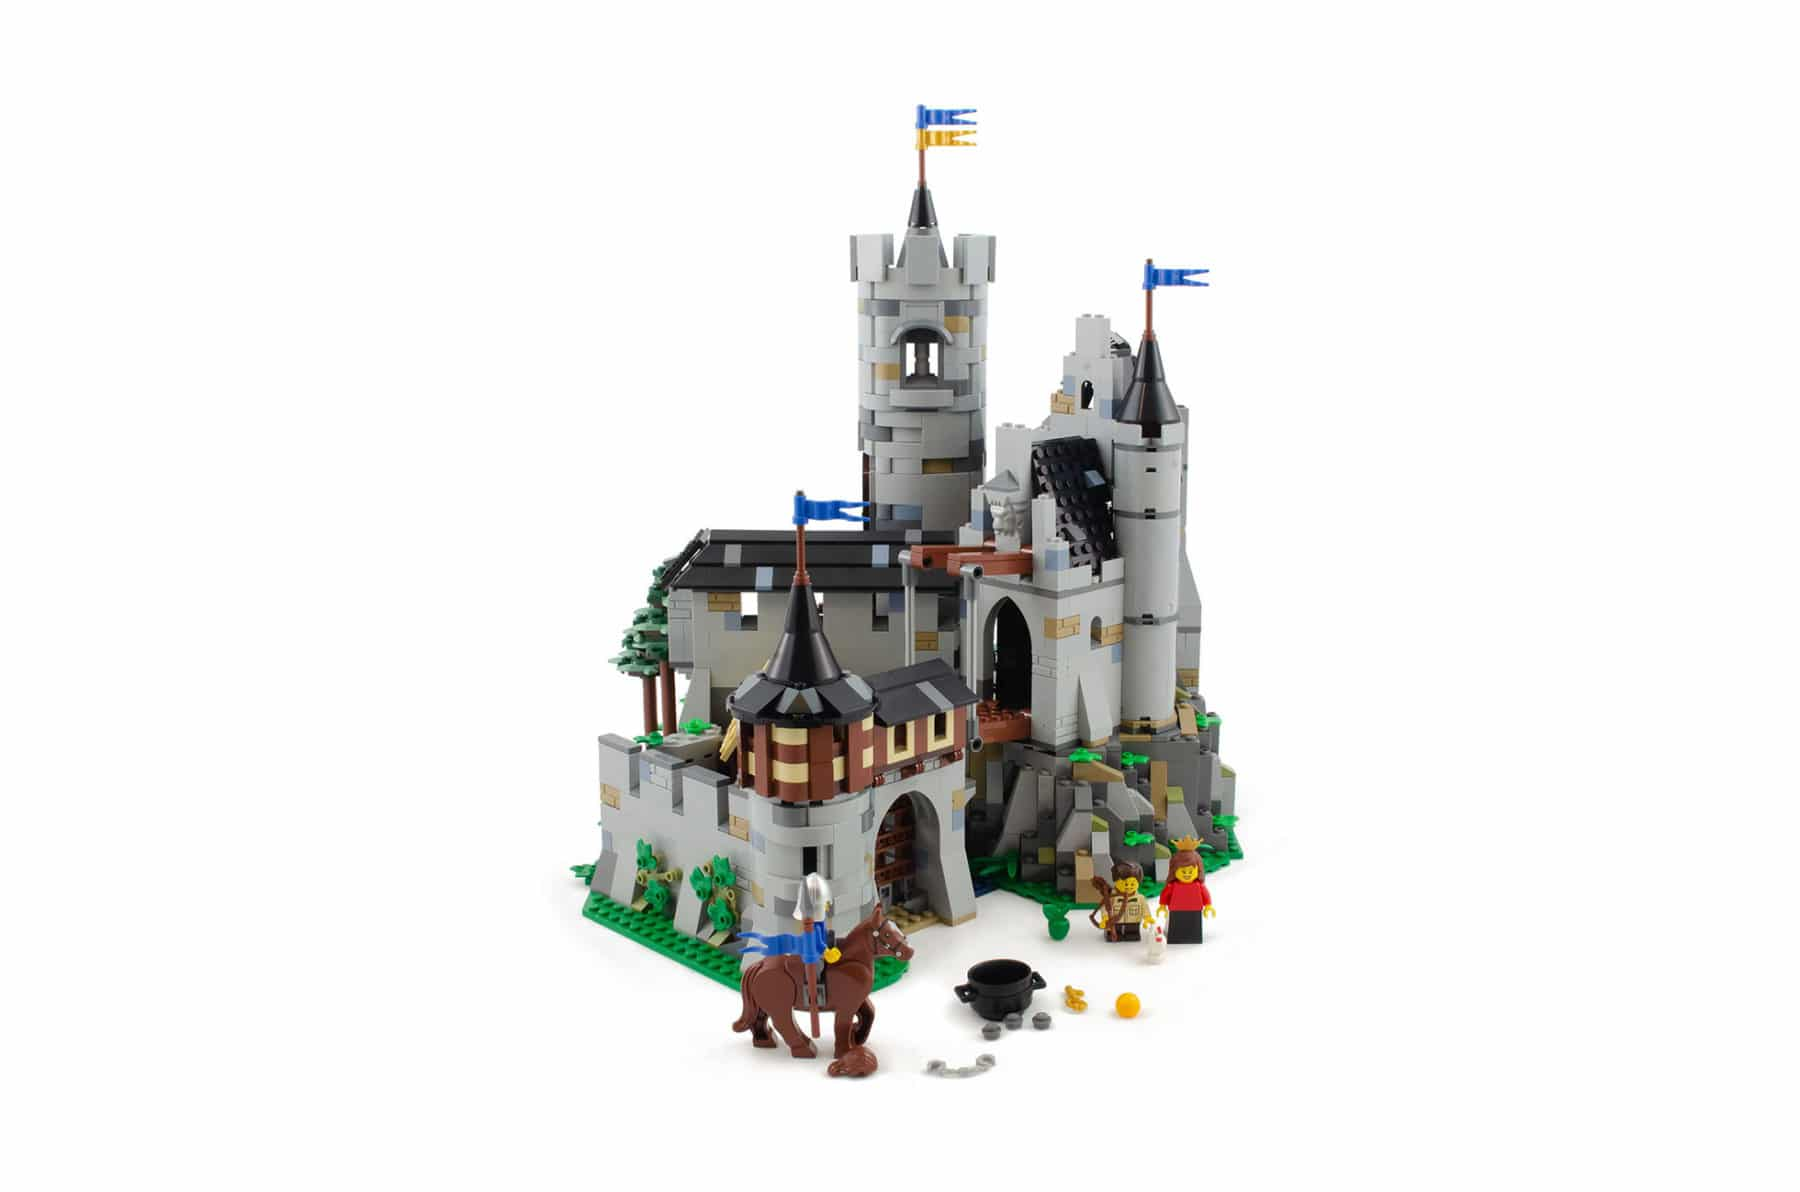 Bricklink AFOL Designer Program: Löwenstein Castle